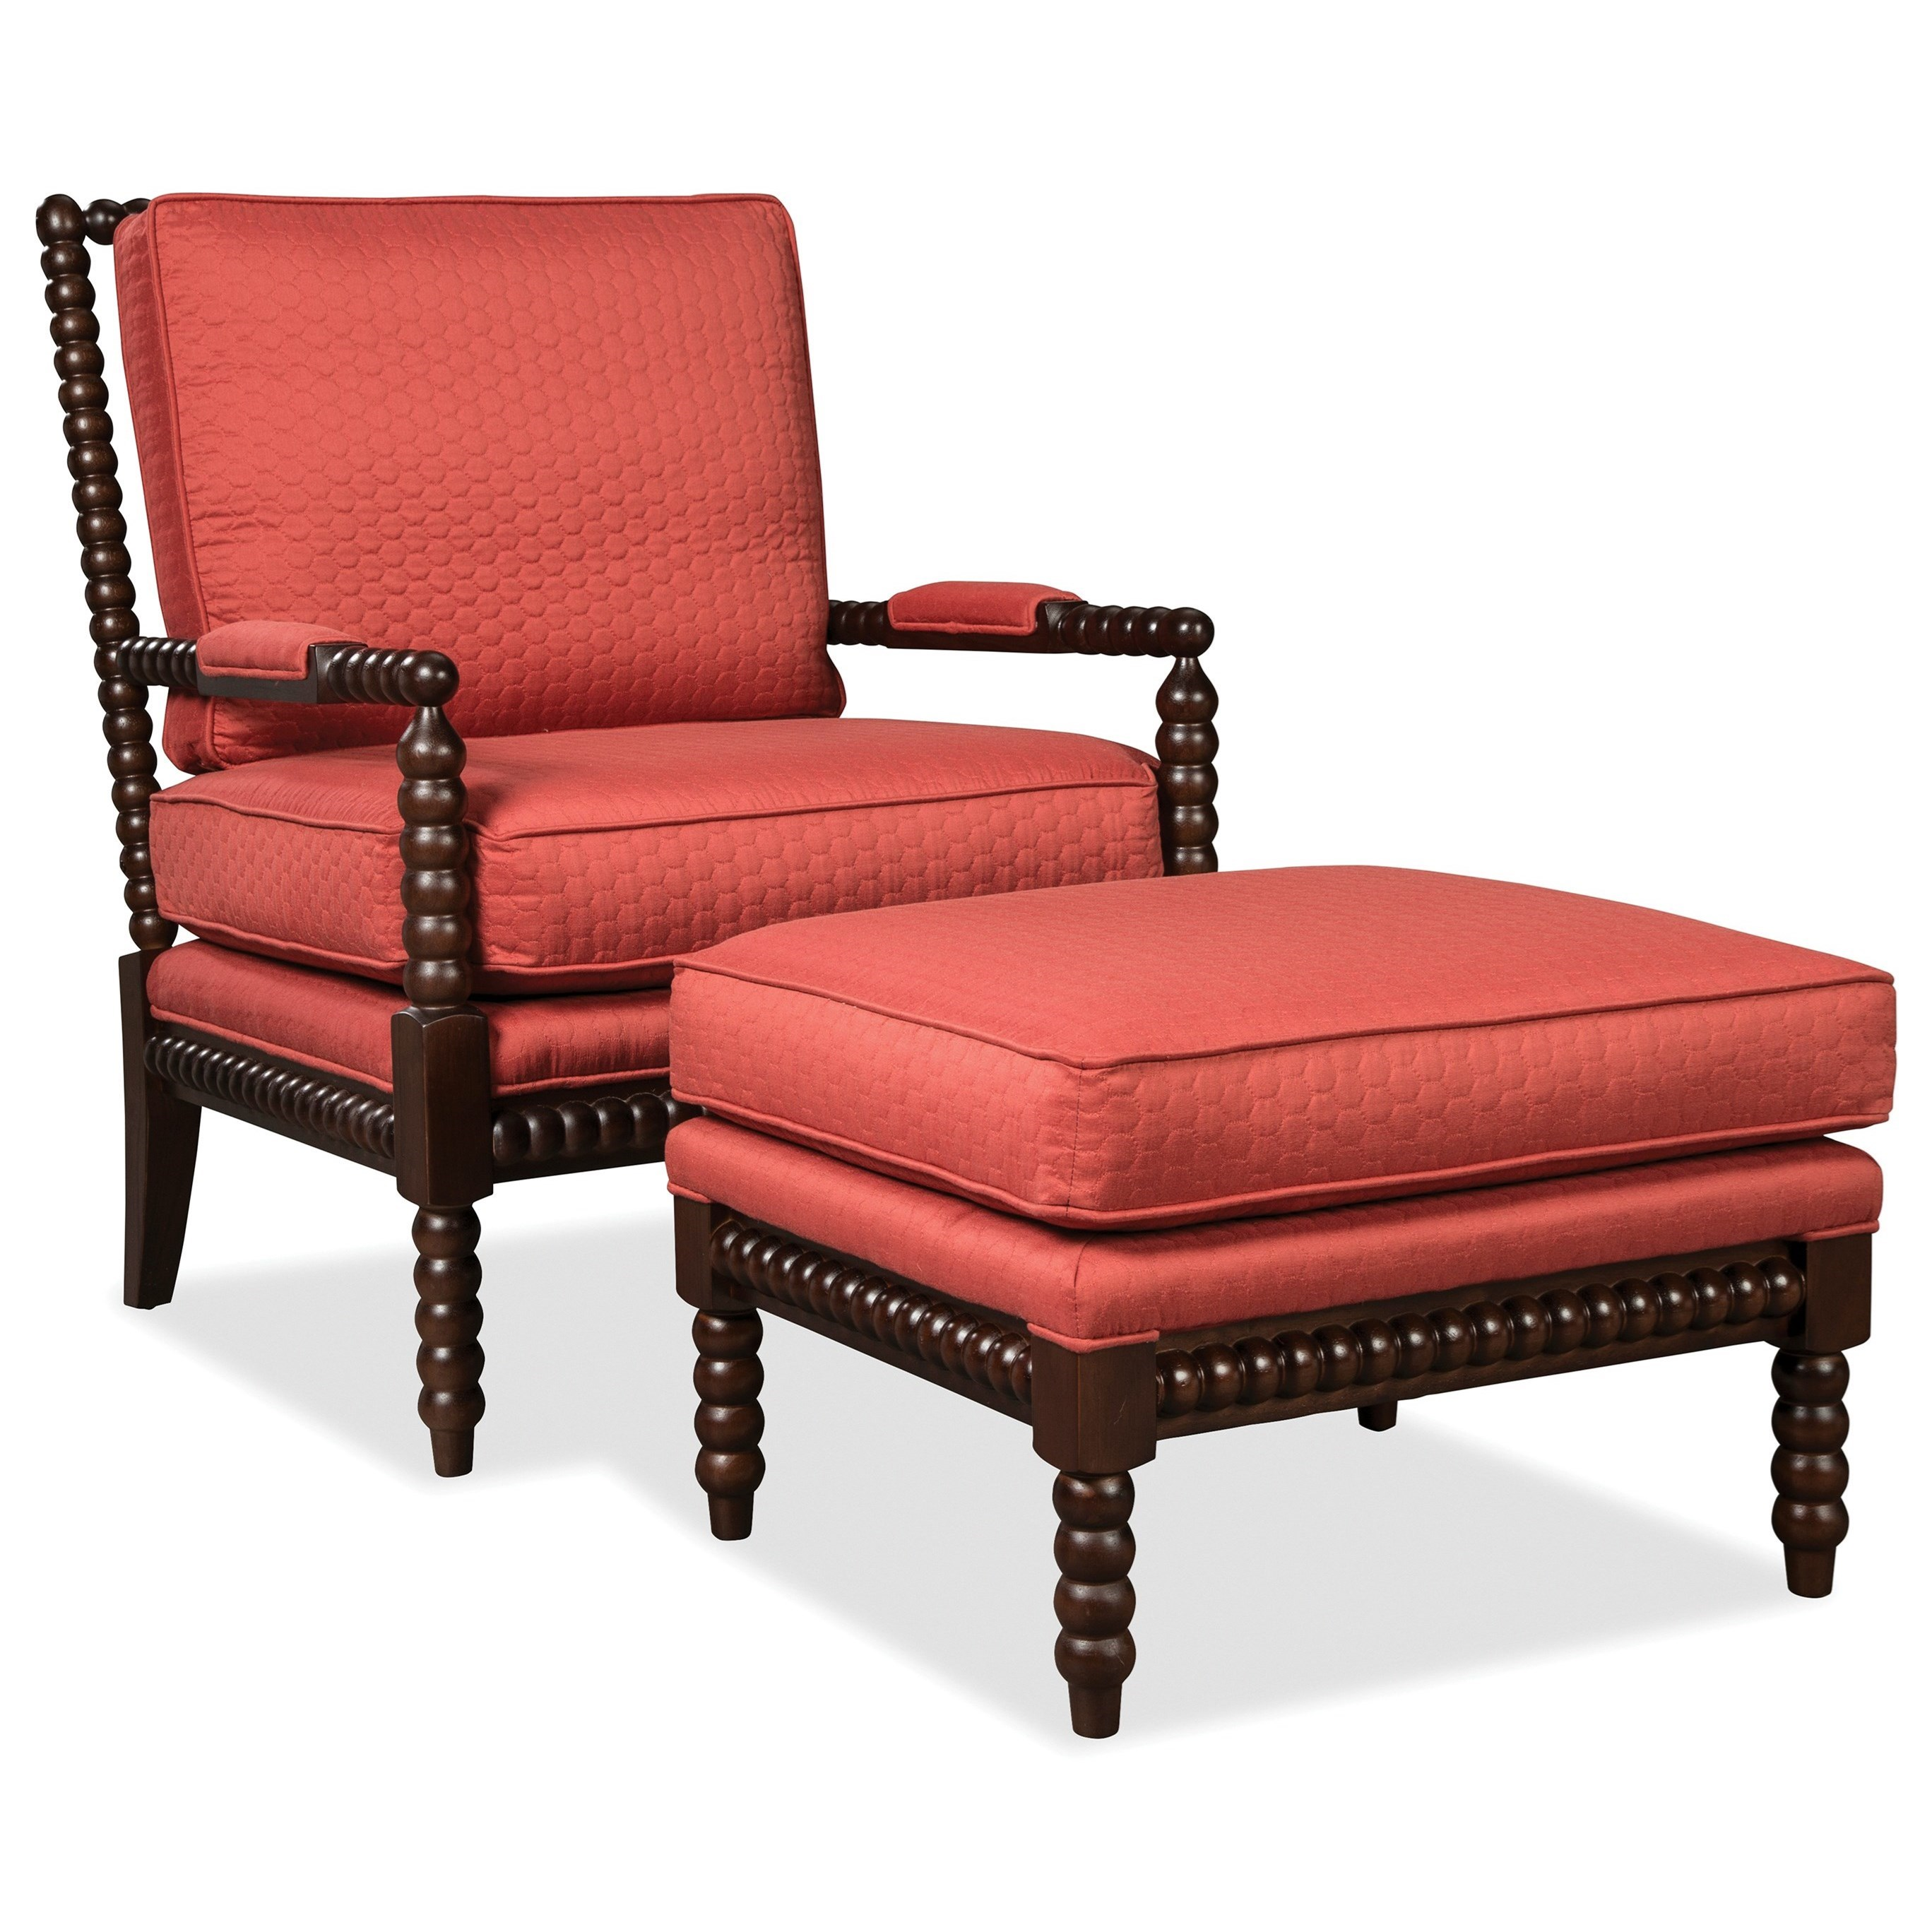 Accent Chairs Exposed Wood Chair by Craftmaster at Baer's Furniture